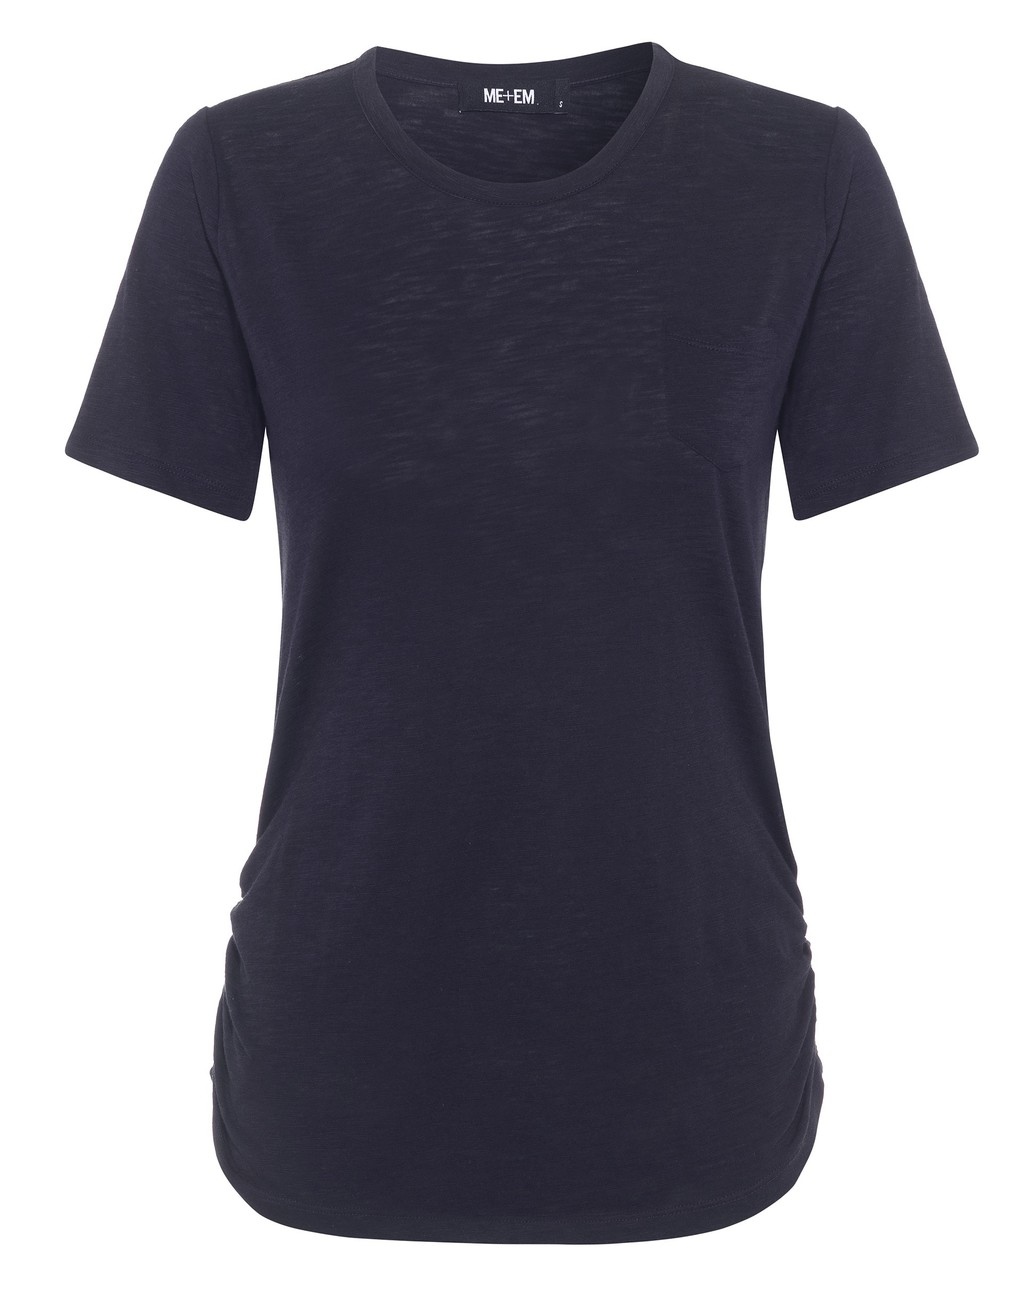 The Perfect Crew Neck Tee - pattern: plain; style: t-shirt; predominant colour: navy; occasions: casual; length: standard; fibres: cotton - 100%; fit: body skimming; neckline: crew; sleeve length: short sleeve; sleeve style: standard; pattern type: fabric; texture group: jersey - stretchy/drapey; season: s/s 2016